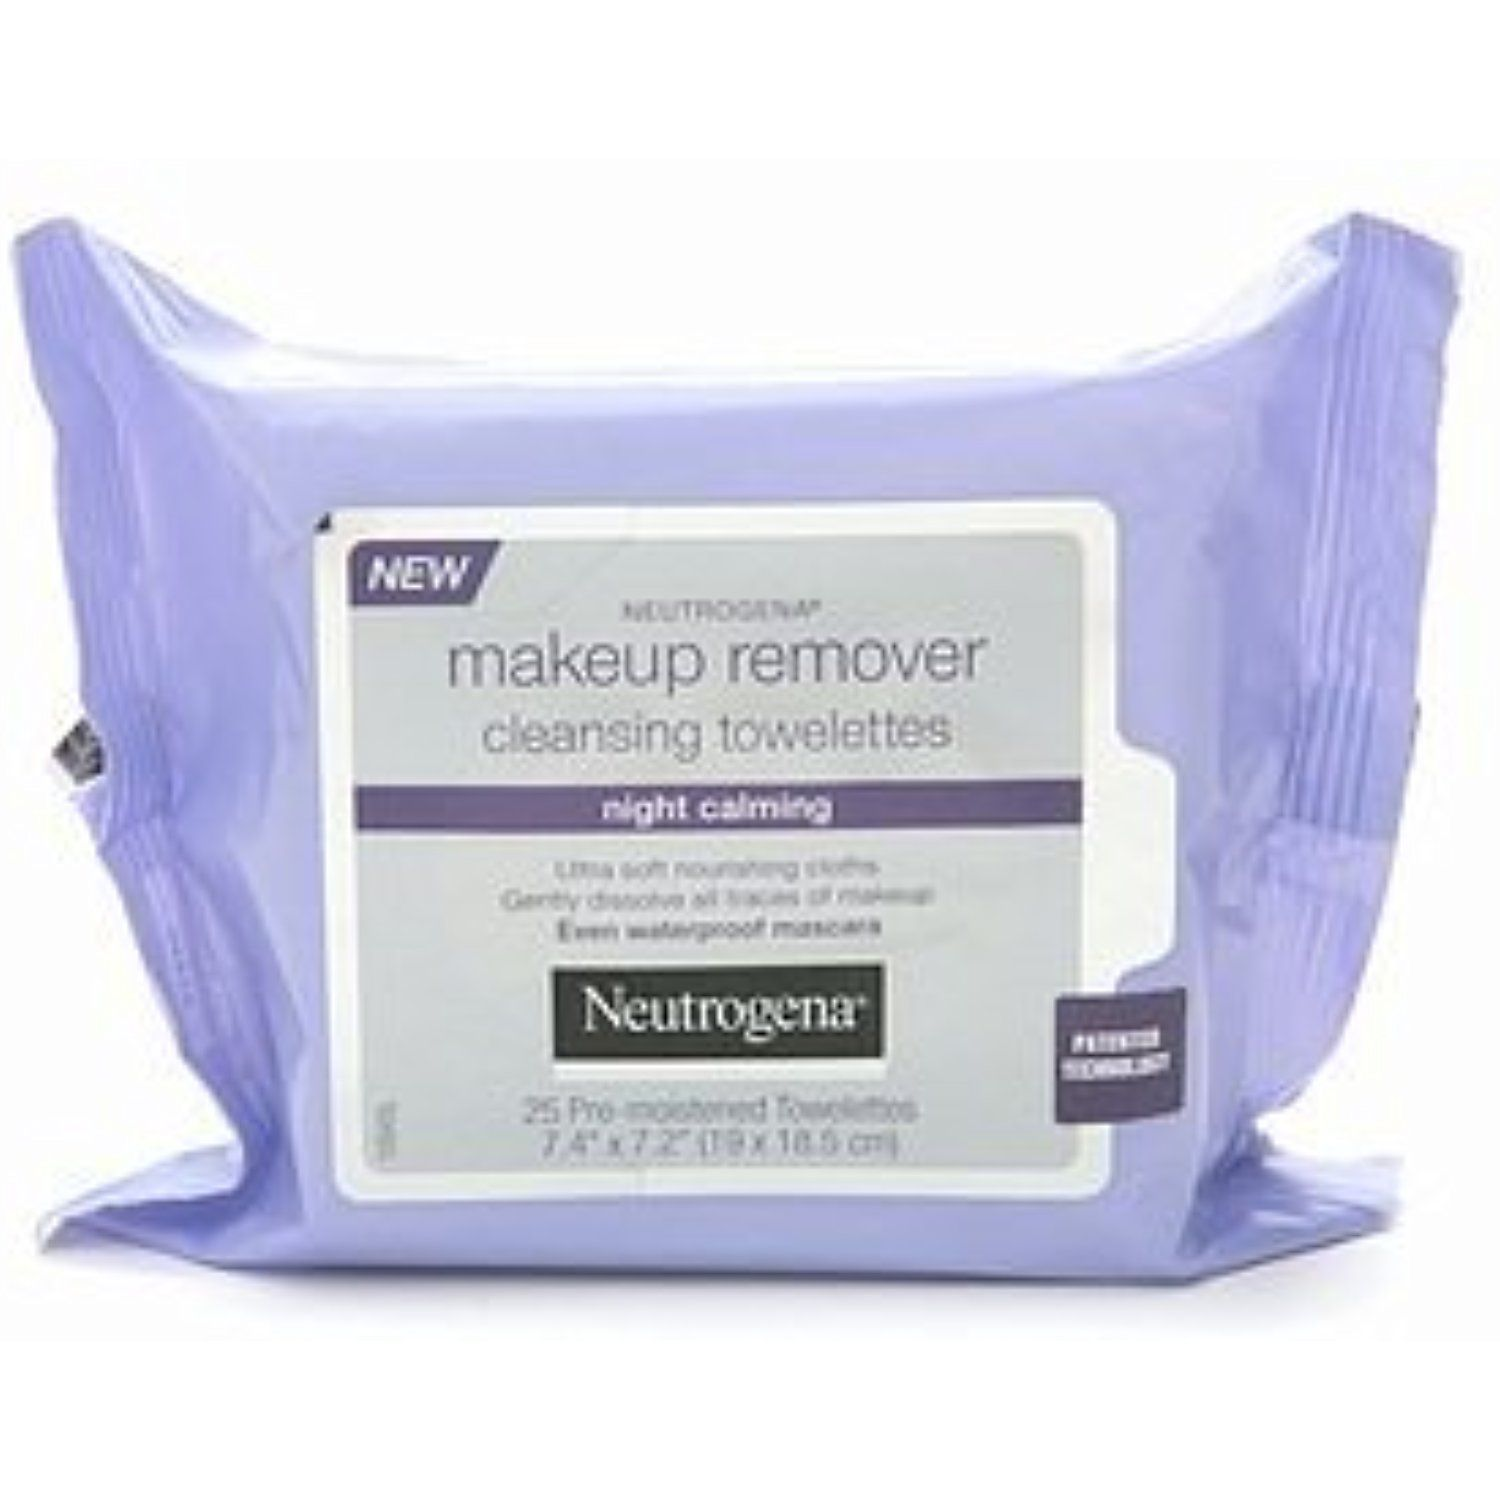 Neutrogena Makeup Remover Cleansing Towelettes Night